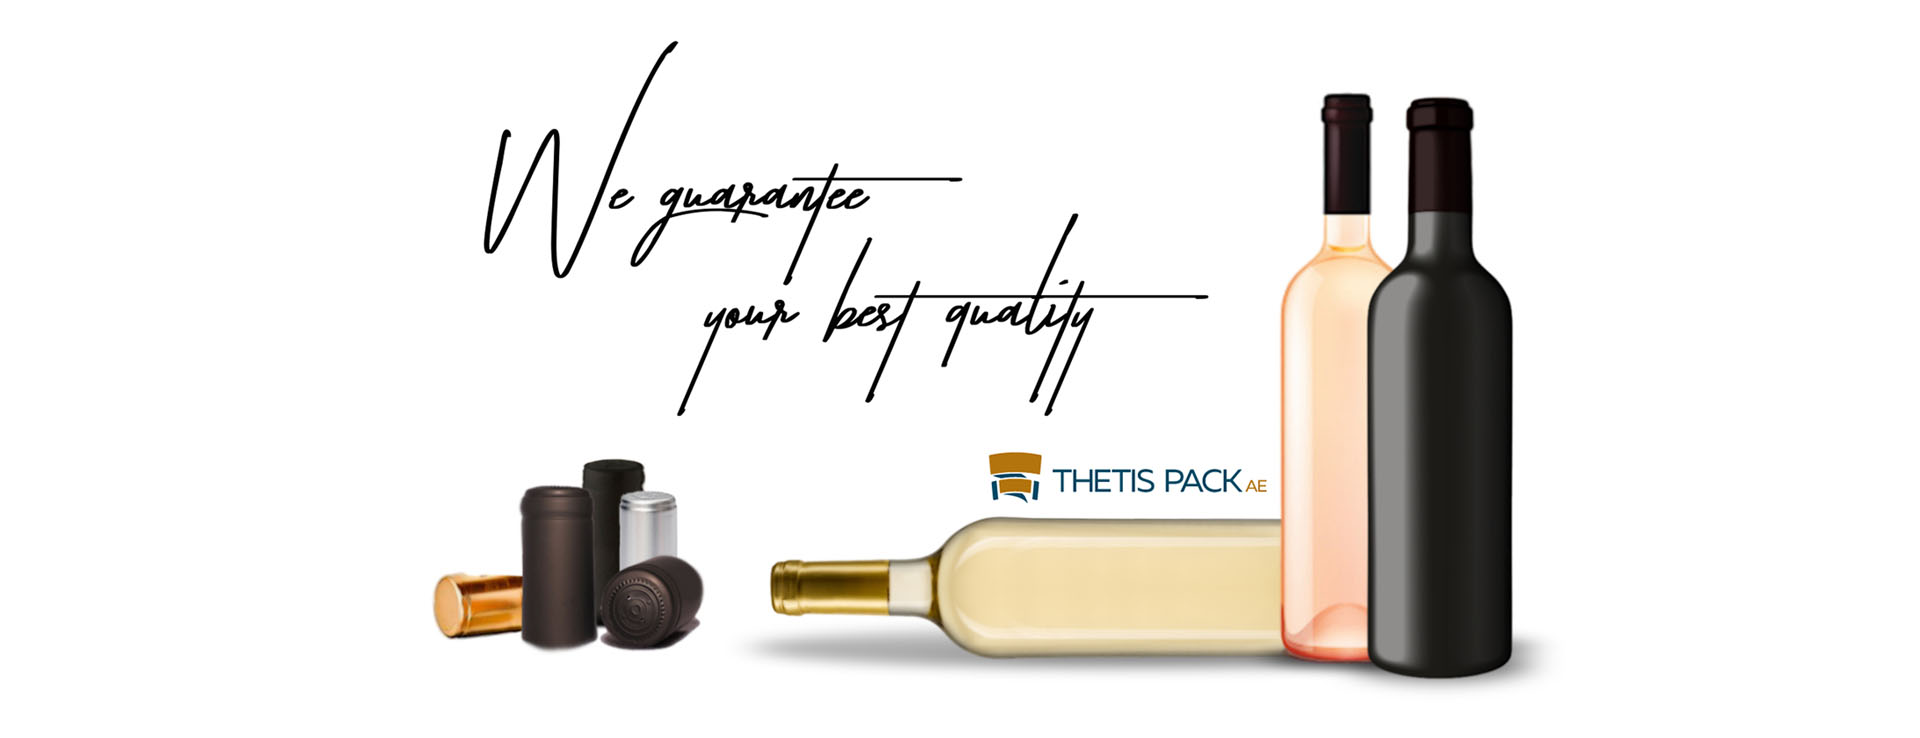 thetis-pack-1